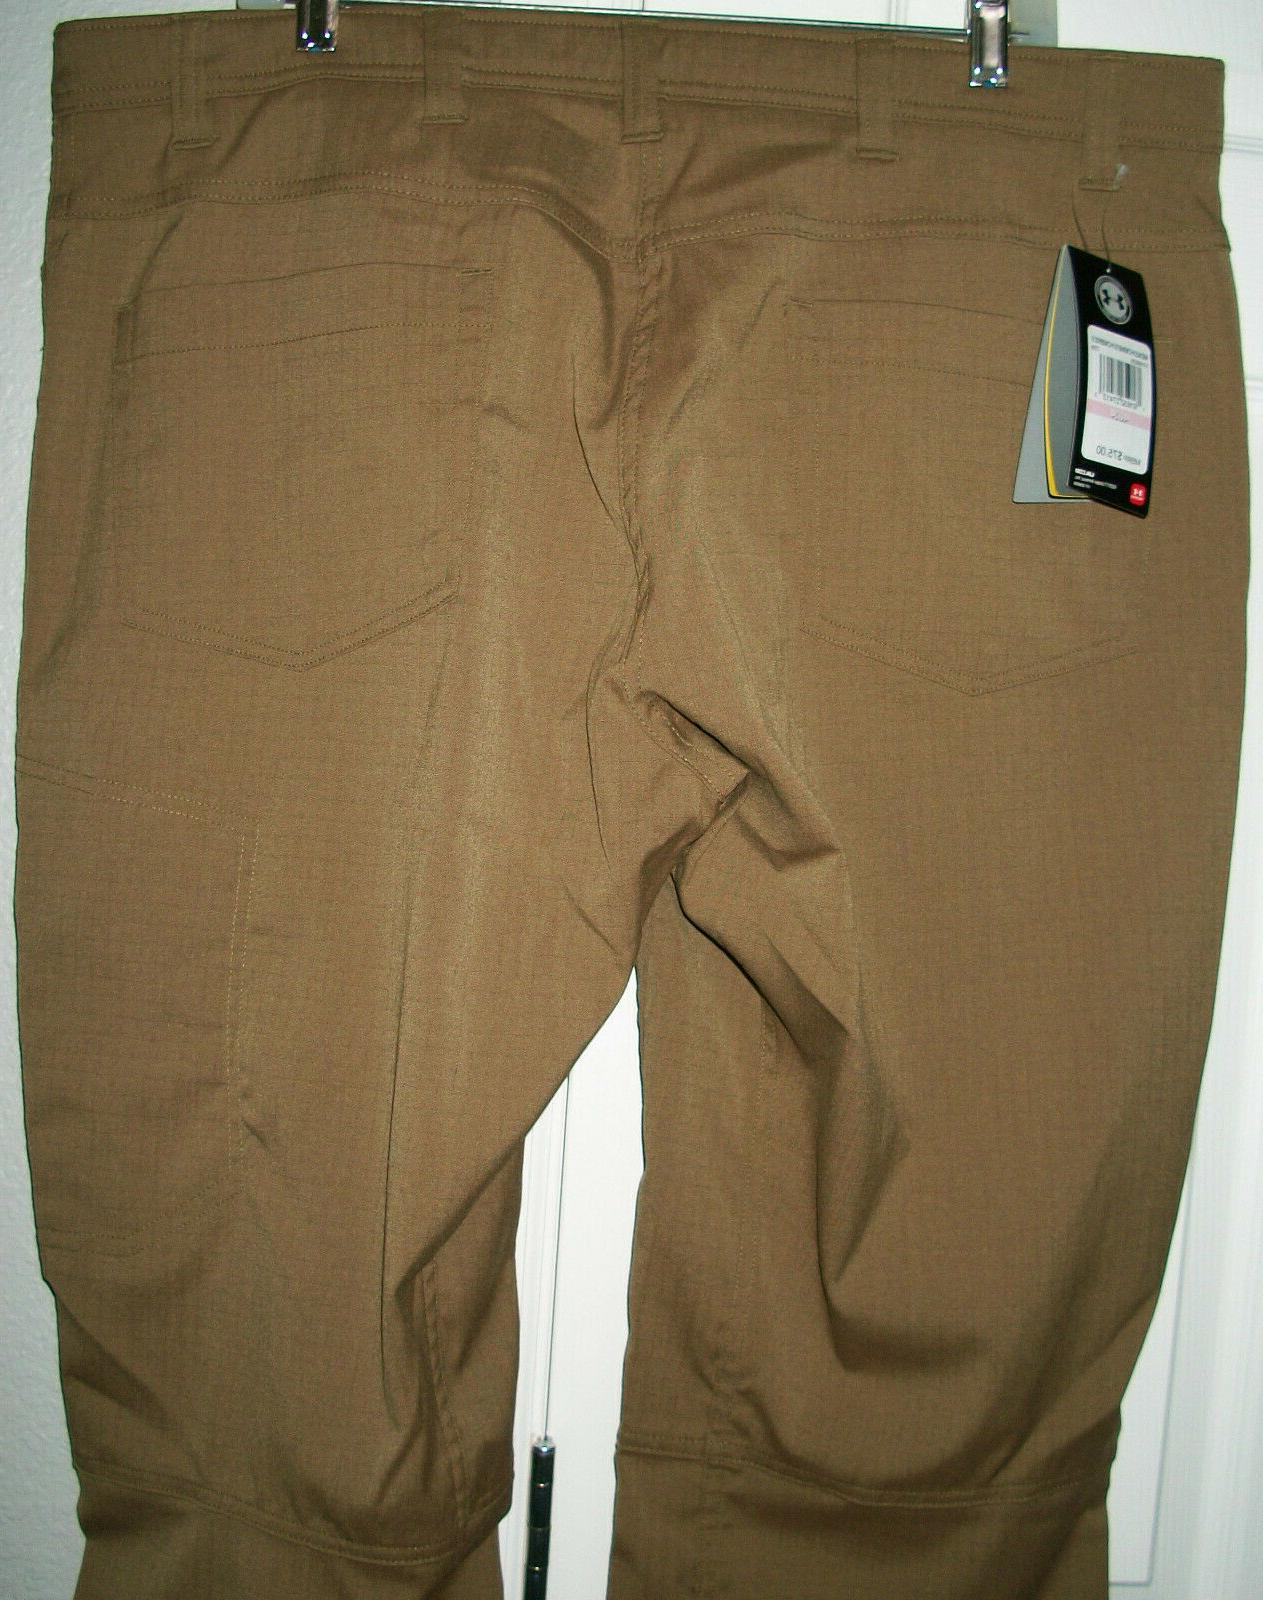 UNDER Water Tan Pants/Jeans 40x34 $75